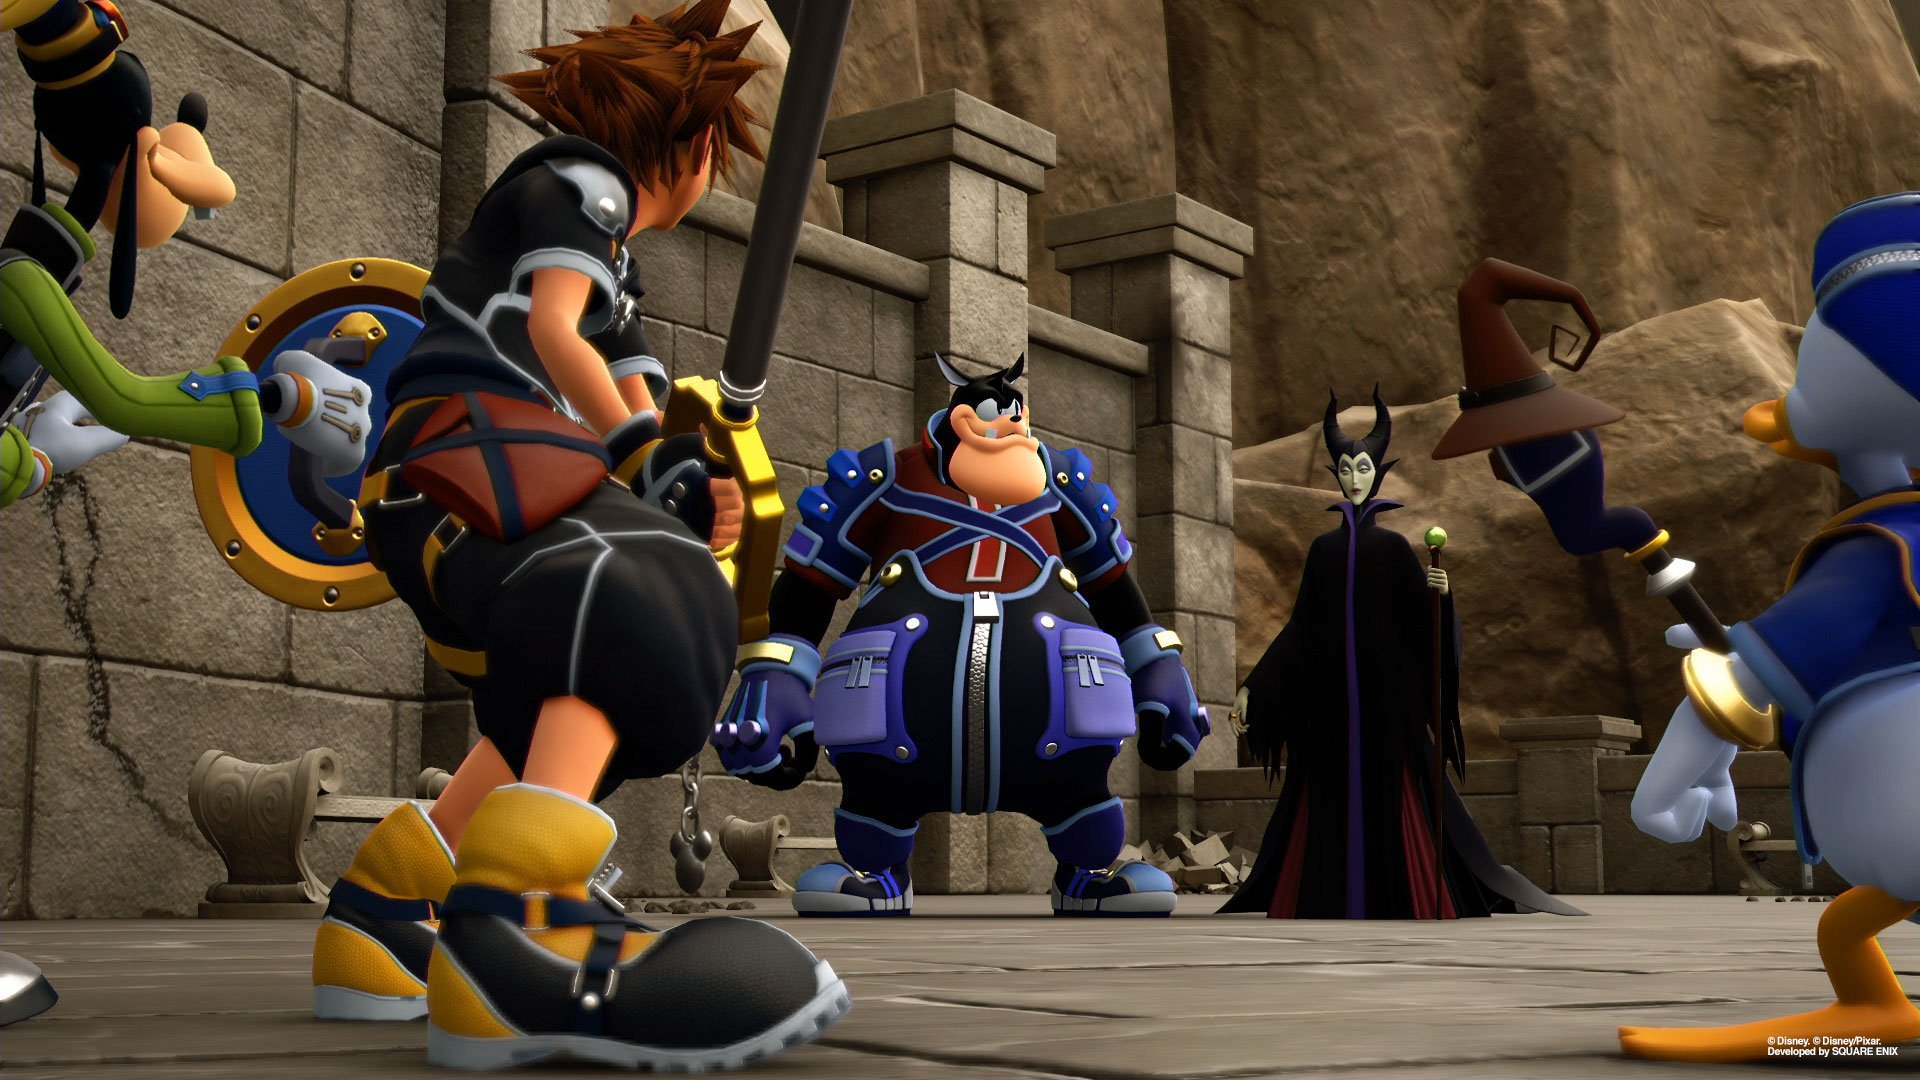 kingdom-hearts-iii-and-re-mind-pc-screenshot-4